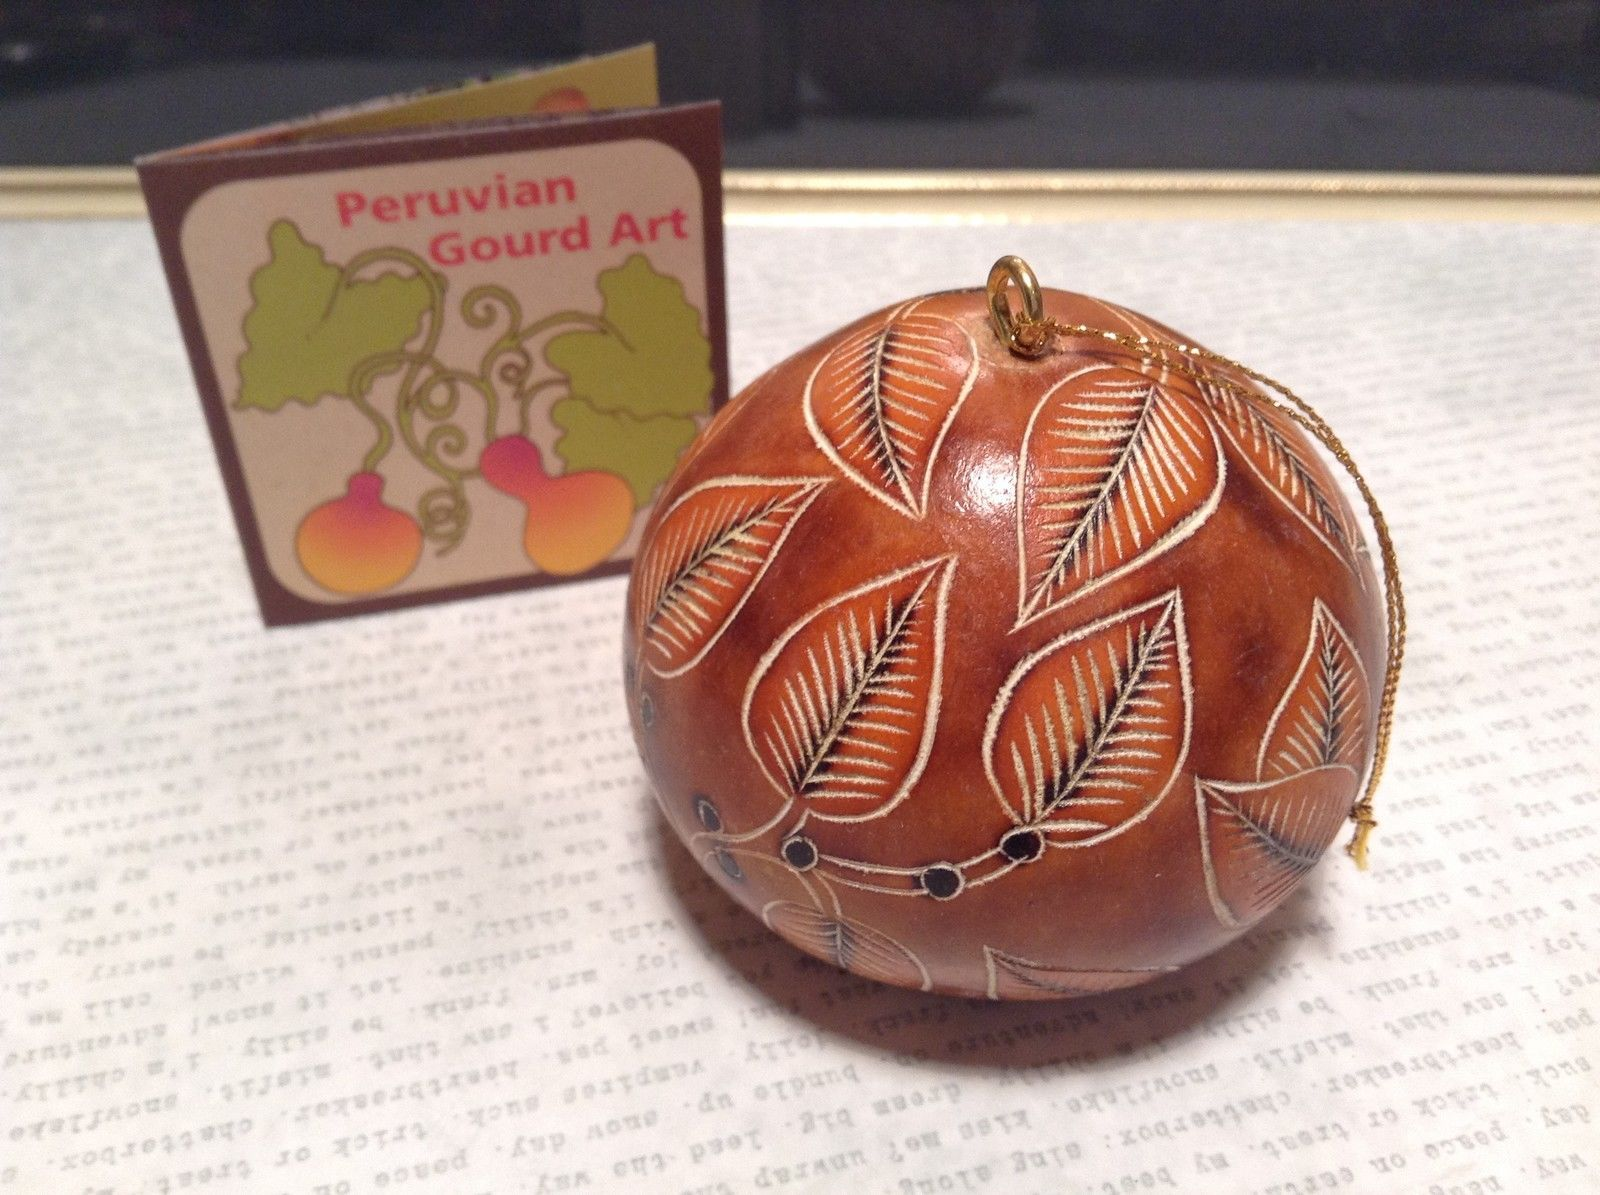 Brown Leaves Hand Carved Art Ornament Peruvian Gourd Eco Sustainable Fair Trade